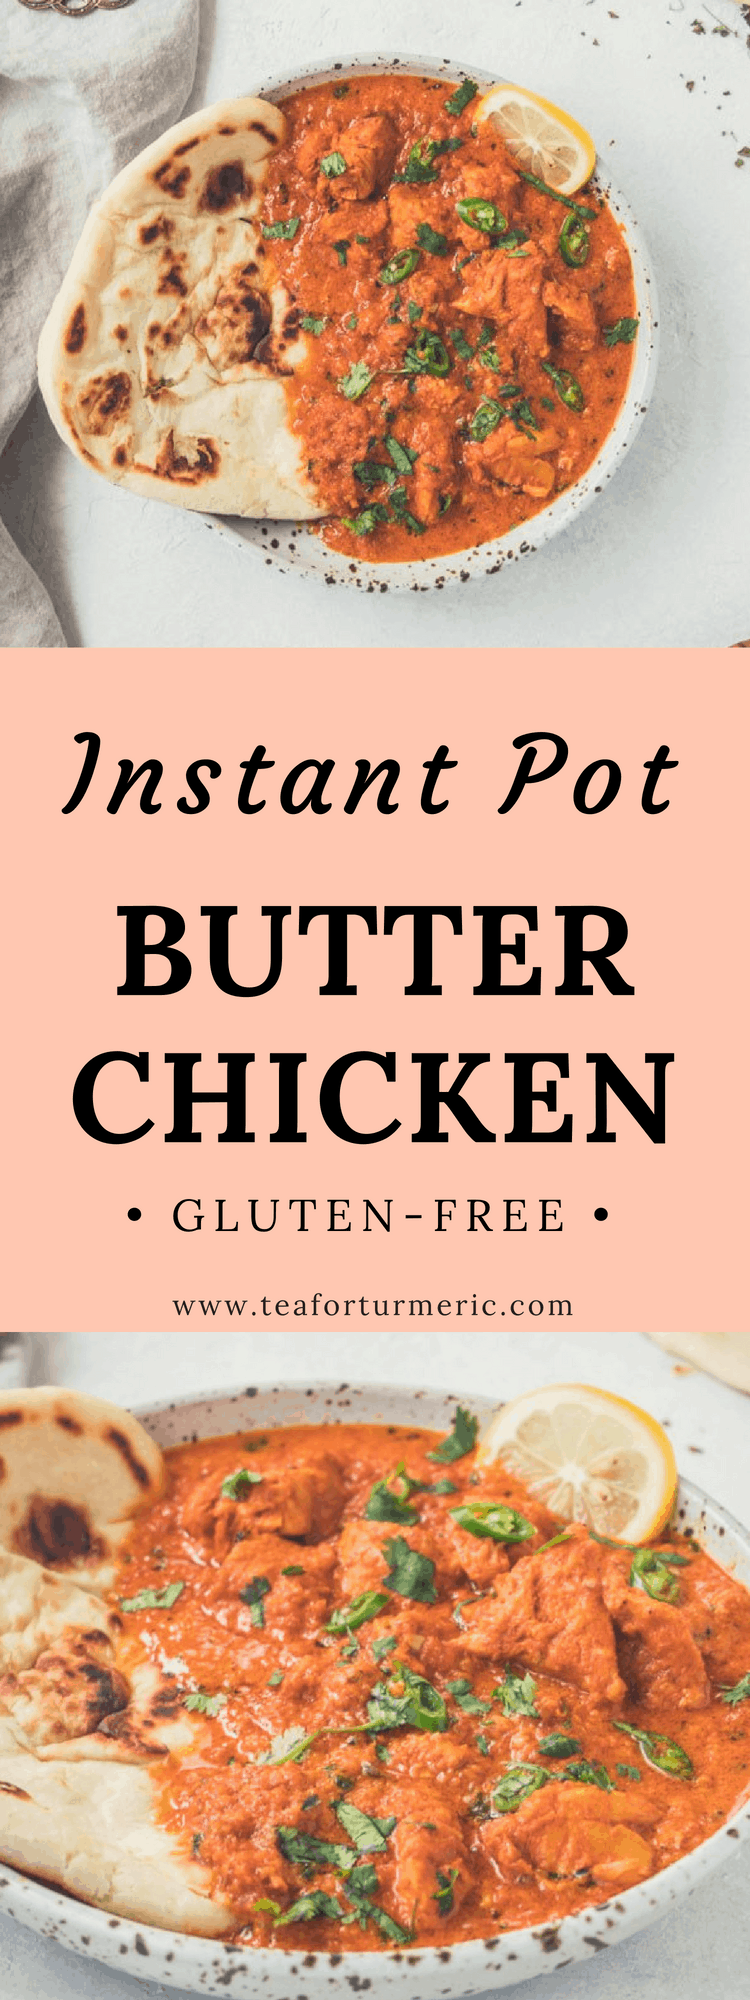 This restaurant-style Instant Pot Butter Chicken recipe is easy to prepare yet yields authentic, deep flavor, and tender chicken! #butterchicken #indianfood